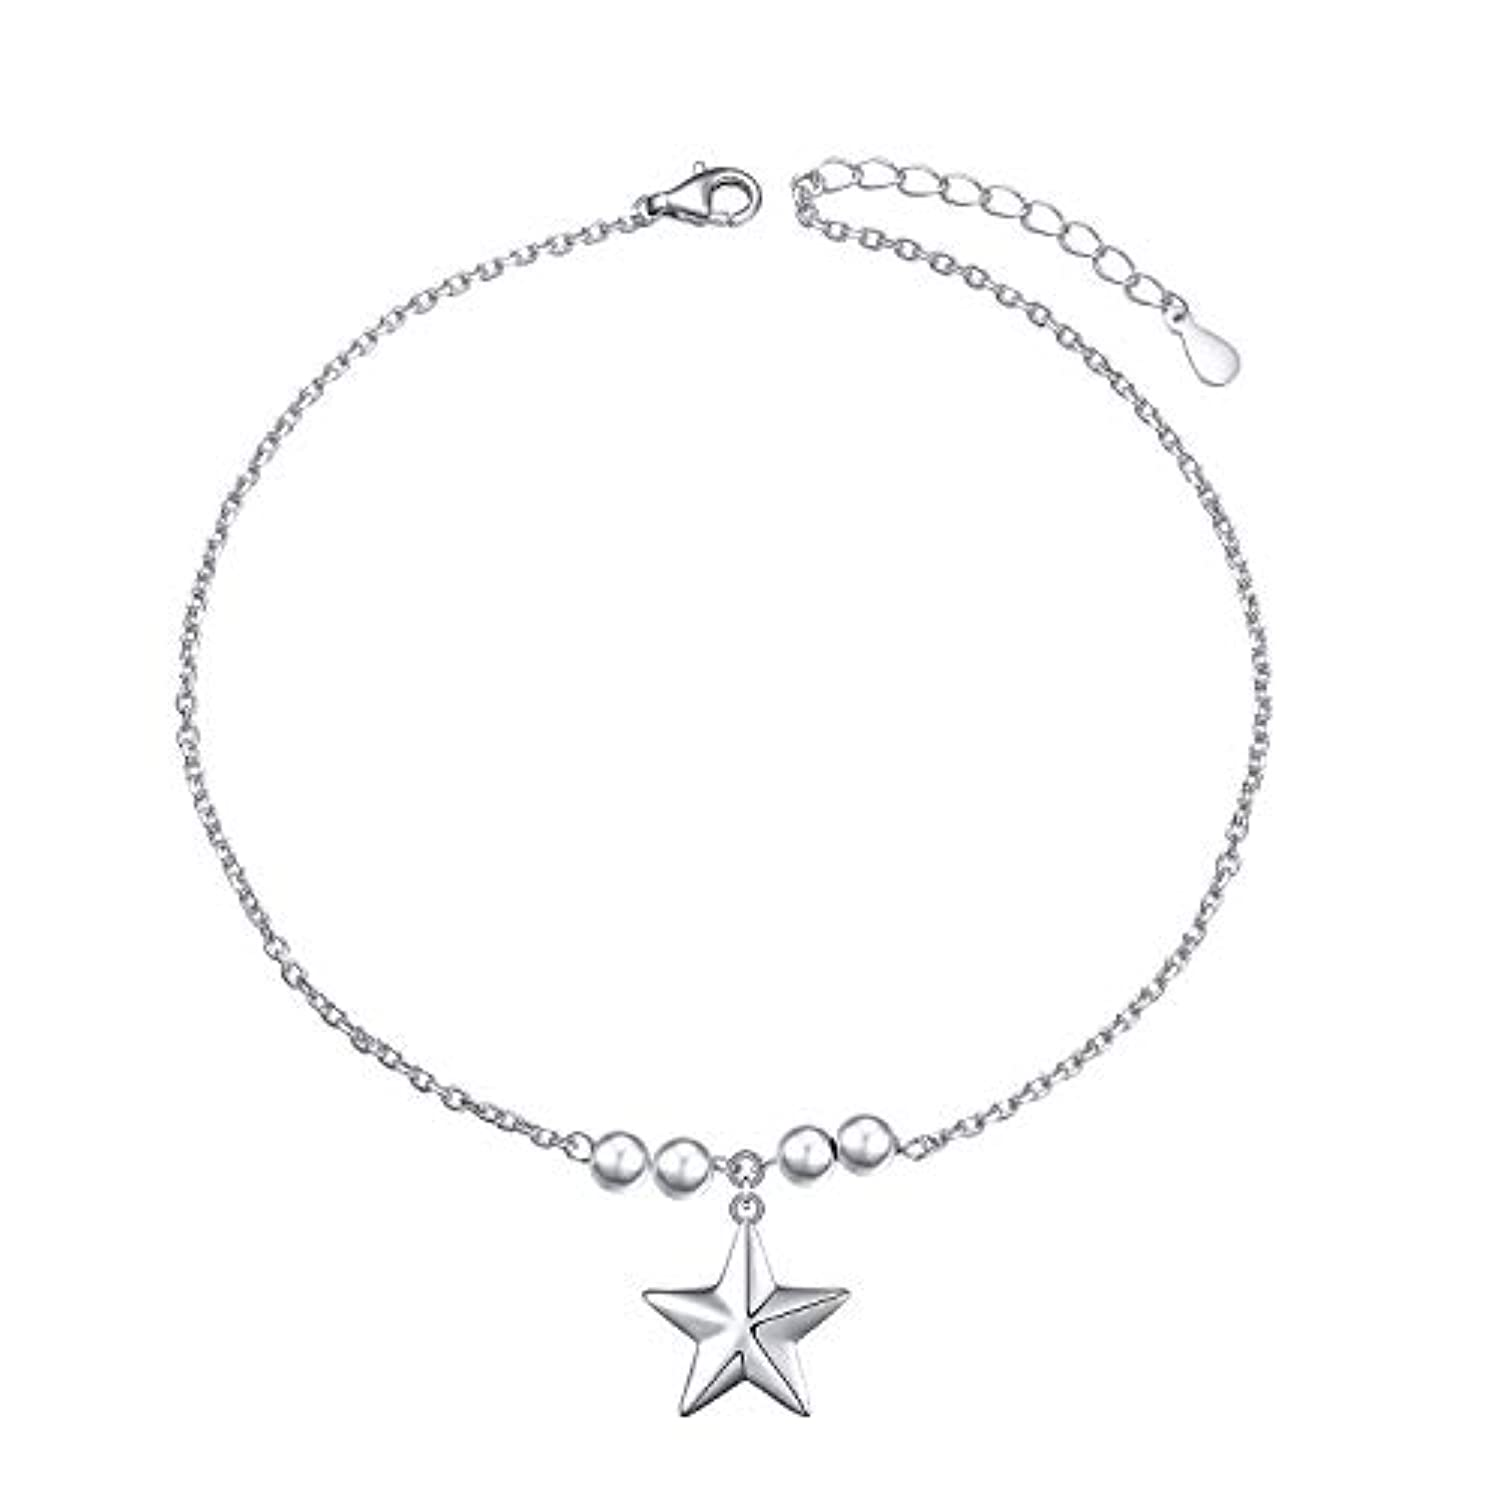 S925 Sterling Silver Anklet for Women Girl Star Charm Adjustable Foot Anklet Jewelry Birthday Gift